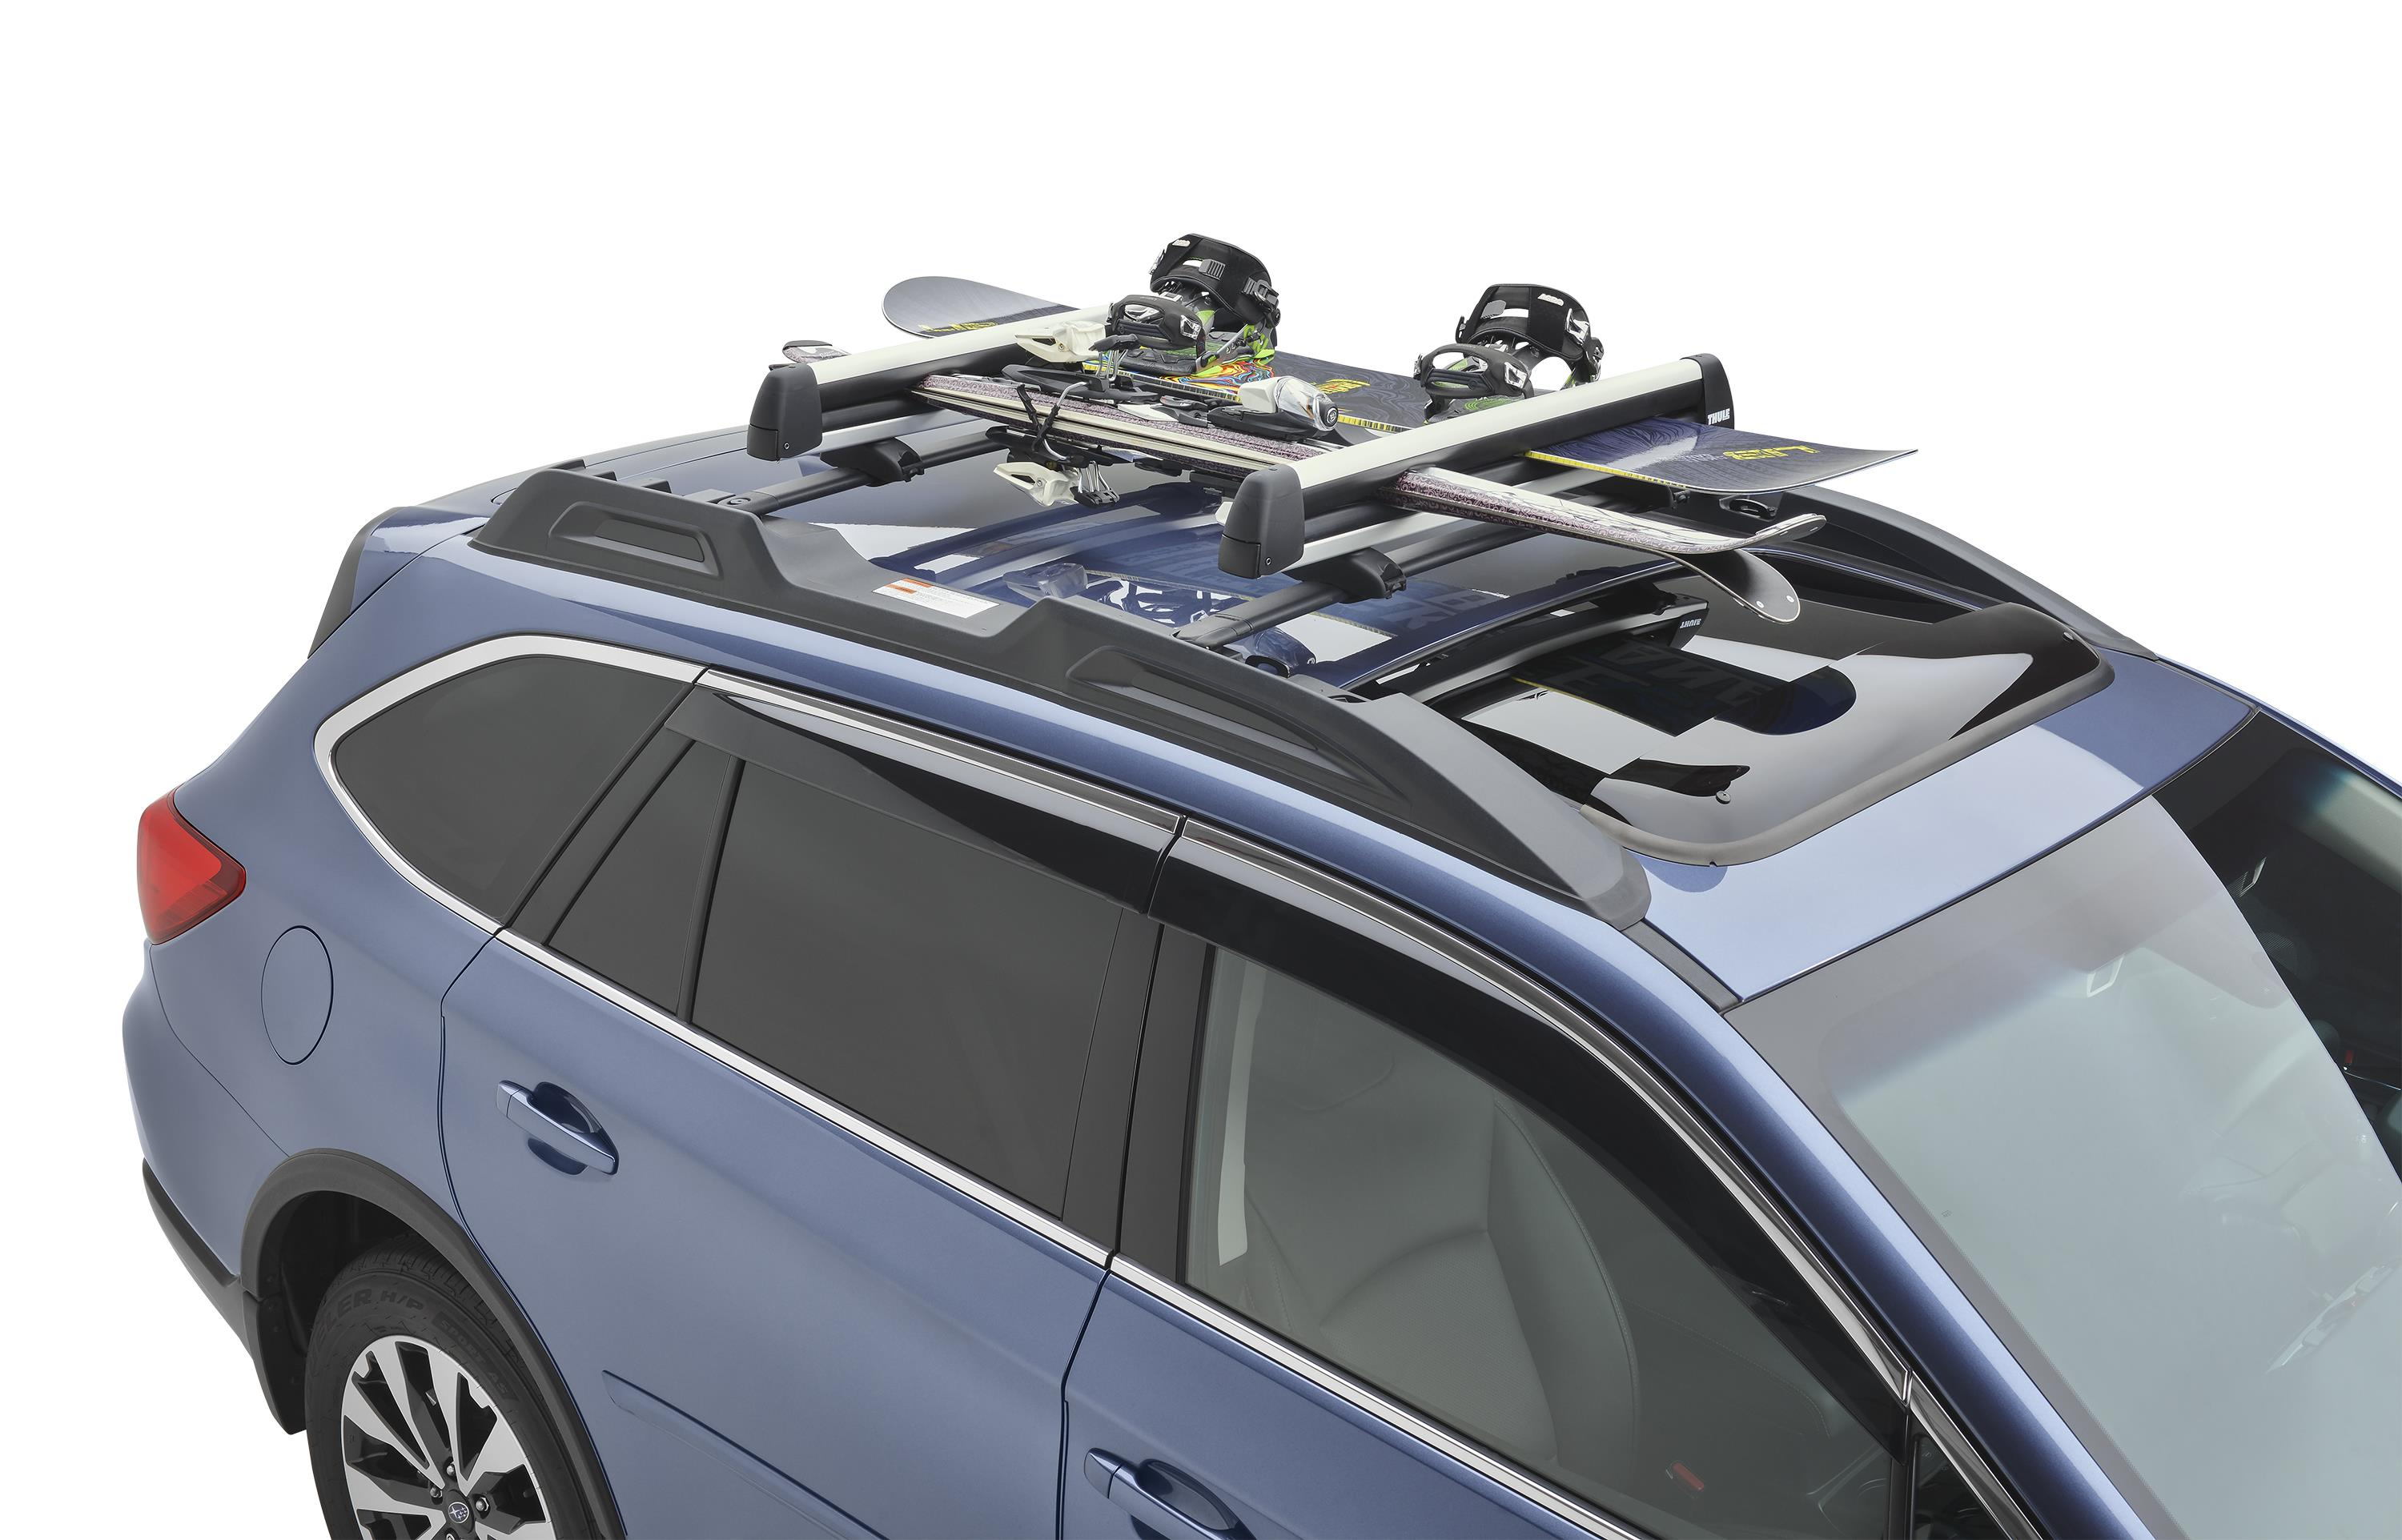 Mark Miller Subaru >> 2017 Subaru Outback Ski / Snowboard Carrier (Thule). Securely, Four, Snowboards - SOA567S010 ...